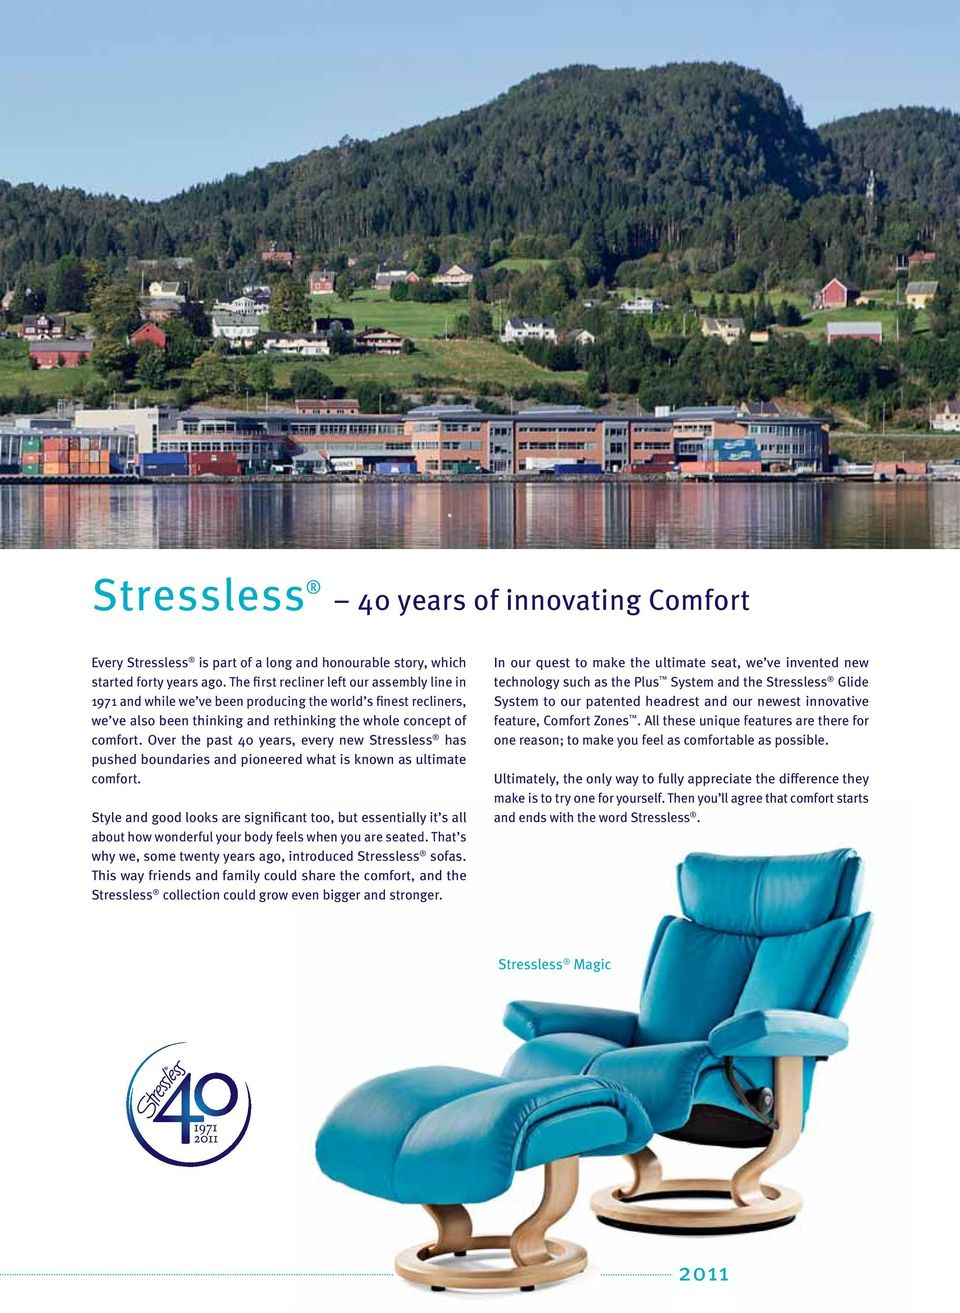 Over the past 40 years, every new Stressless has pushed boundaries and pioneered what is known as ultimate comfort.